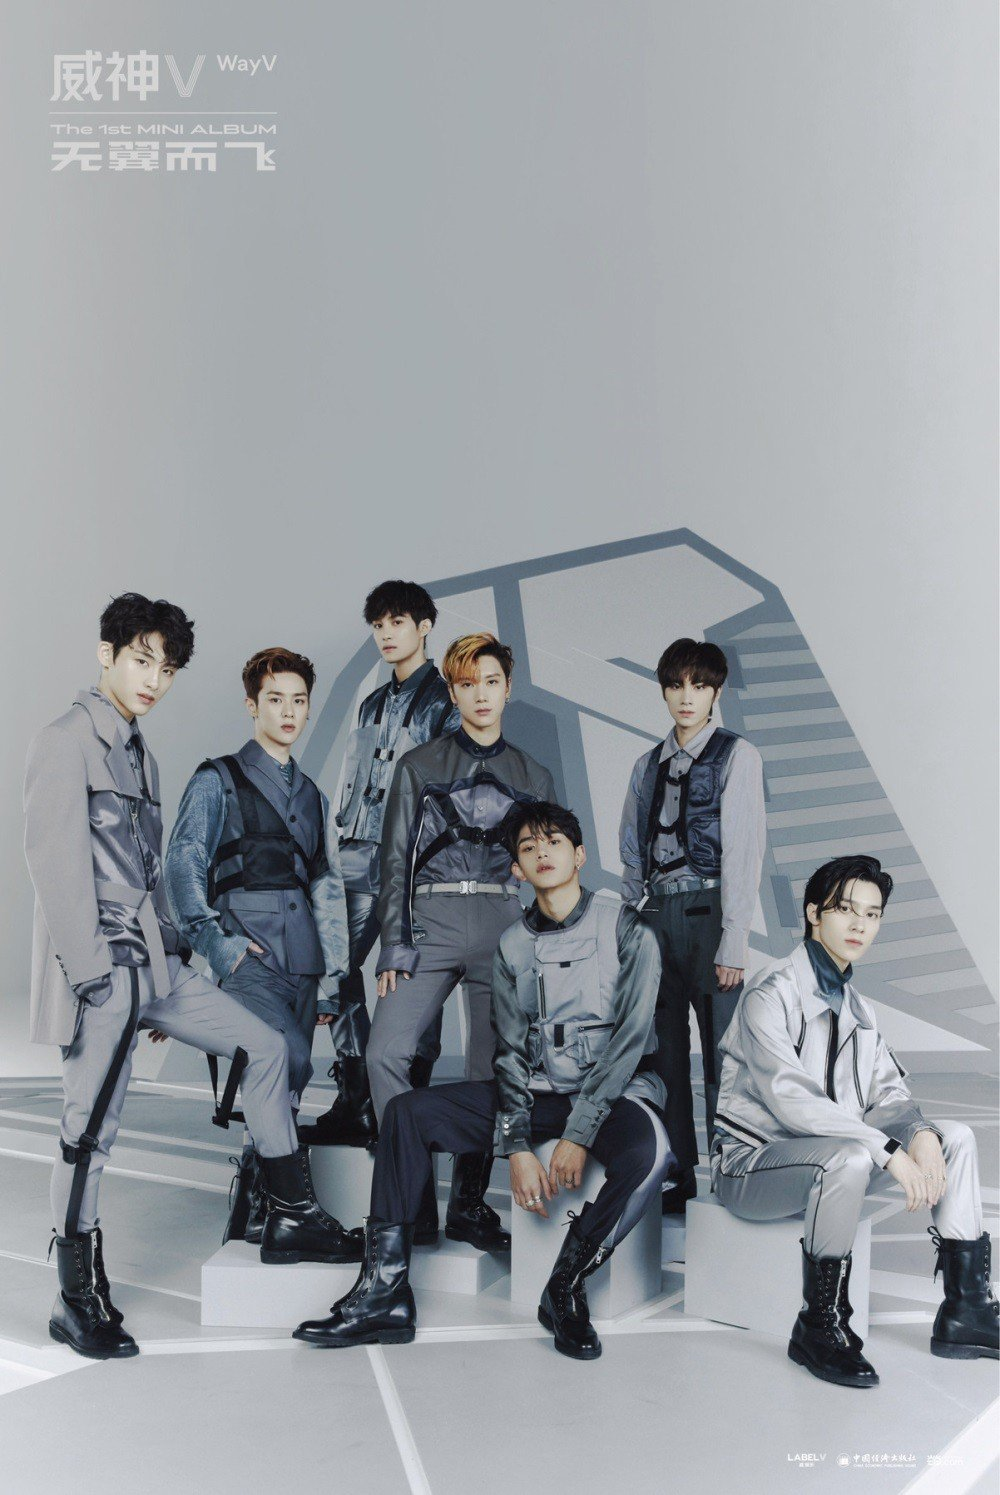 Image Result For Wayv